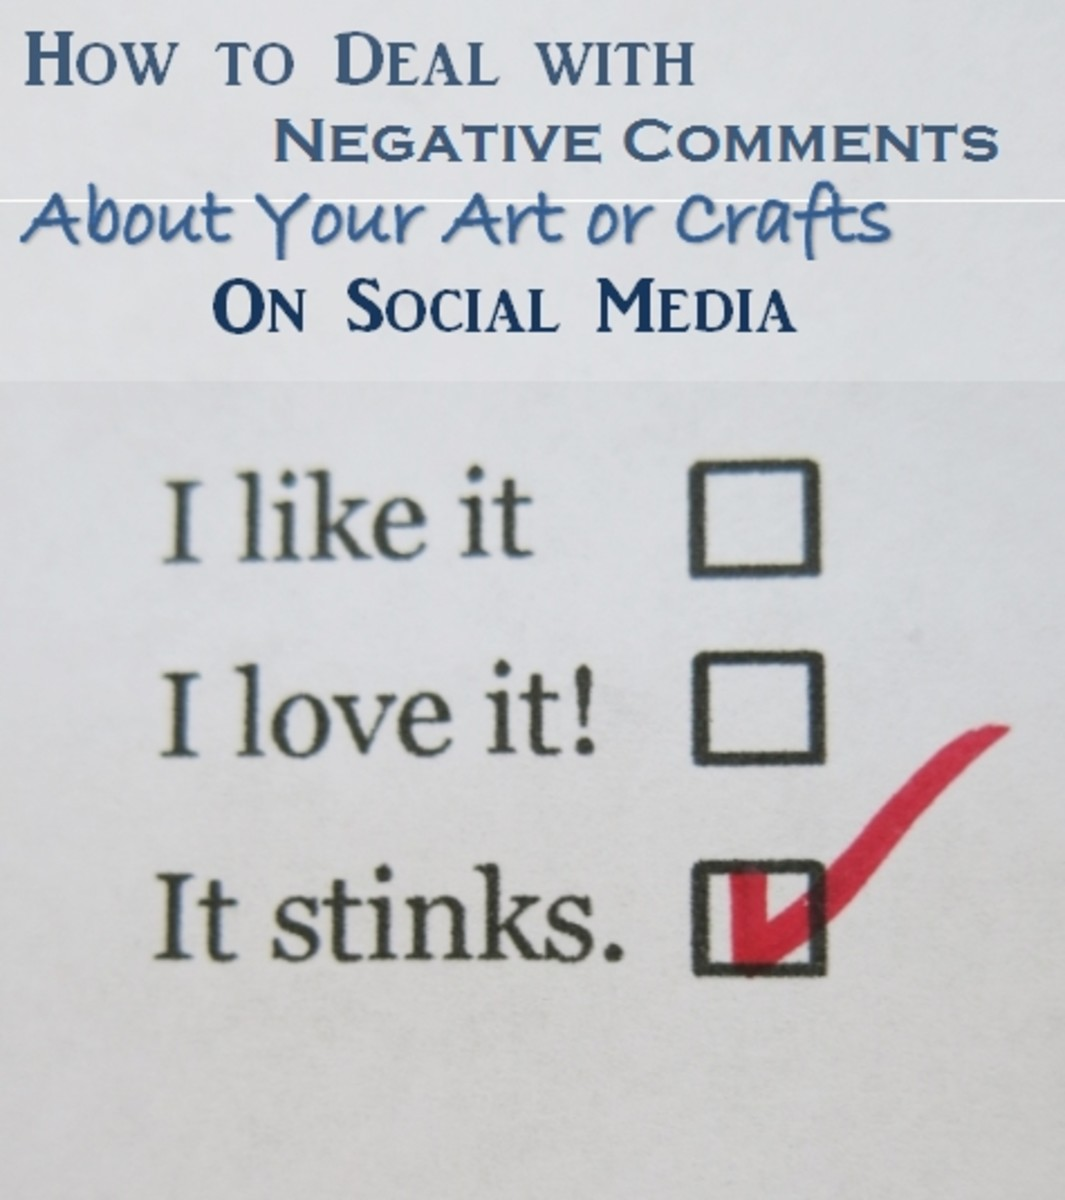 How to deal with negative comments about your art or crafts on social media or the internet